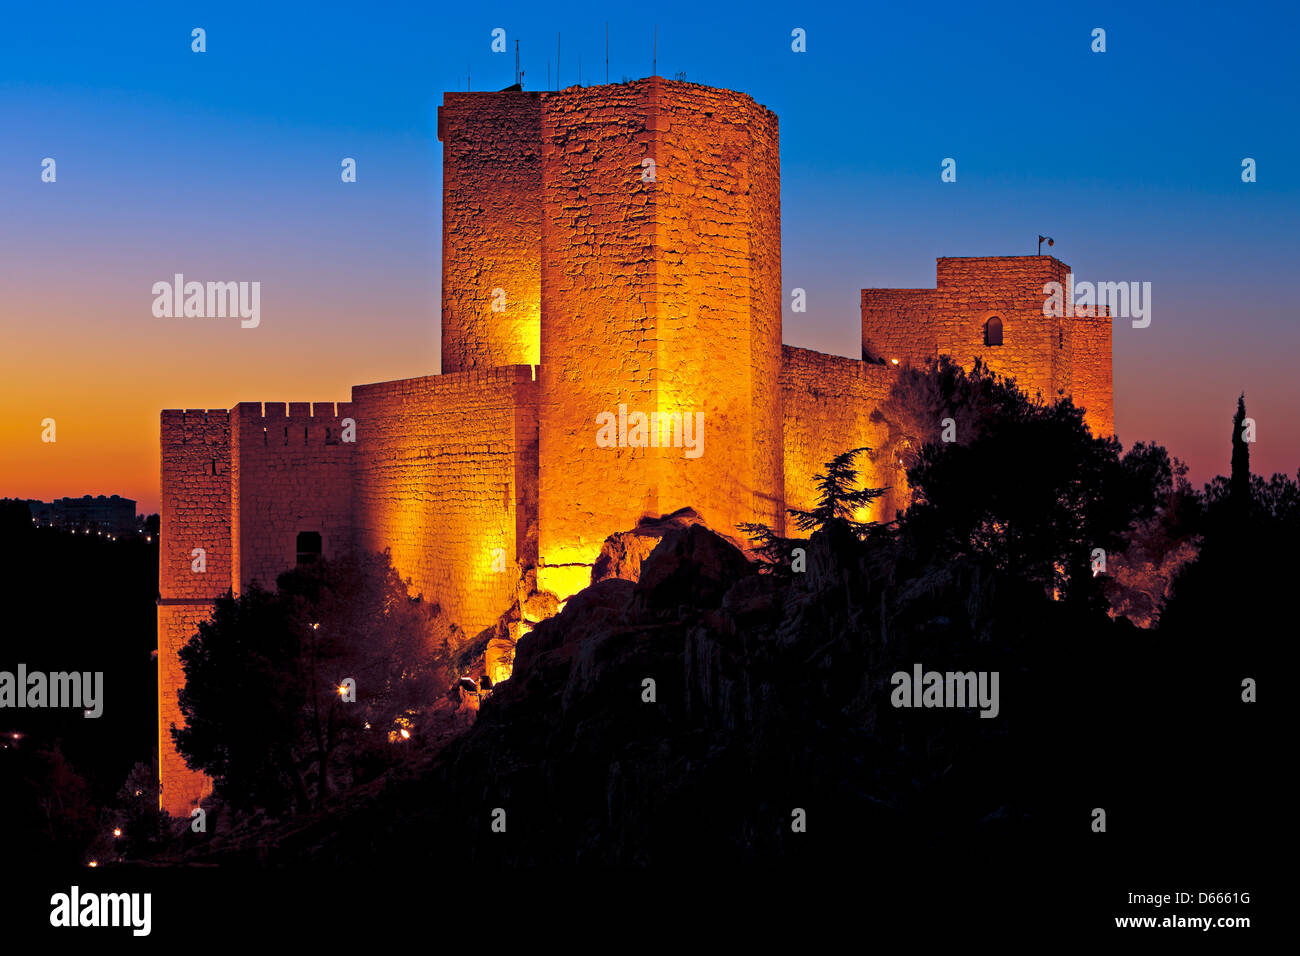 Walls and towers of the Castillo de Santa Catalina (Castle) at dusk in the City of Jaen, Province of Jaen, Andalusia - Stock Image